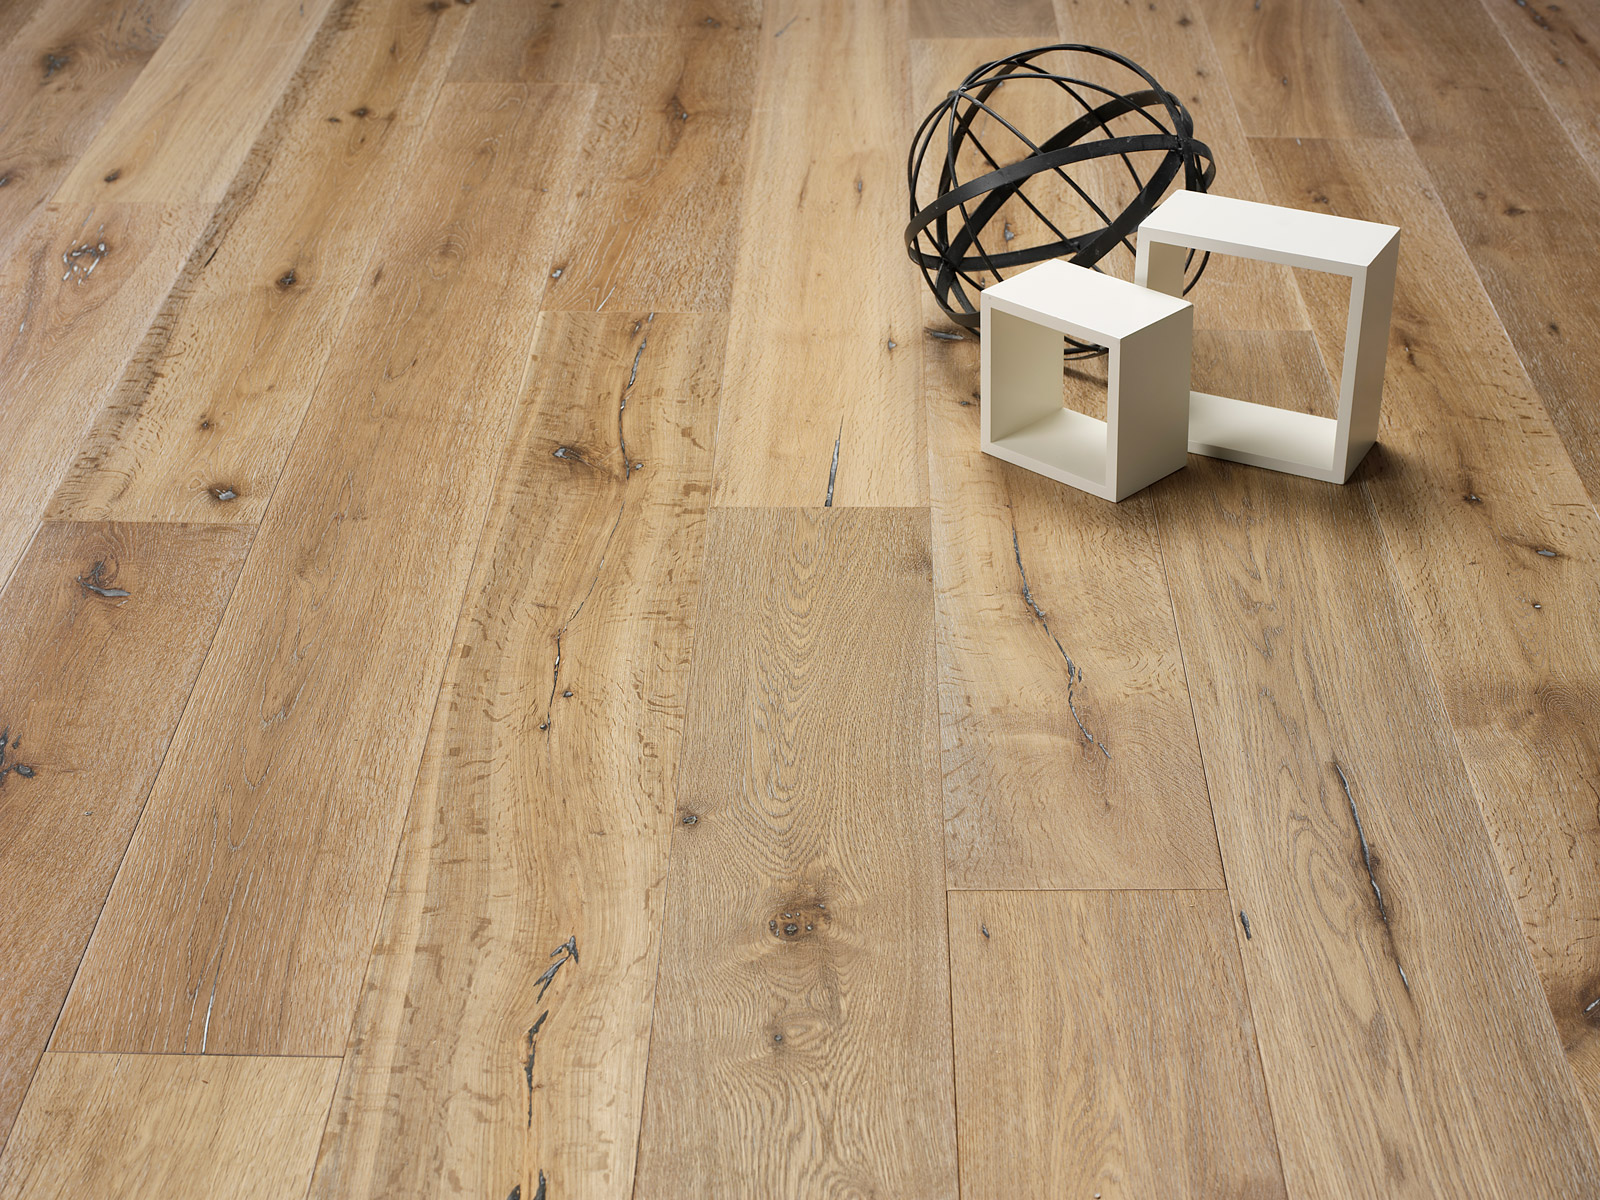 Important Hardwood Flooring Pros And Cons District Floor Depot DC - Hardwood floor discounters